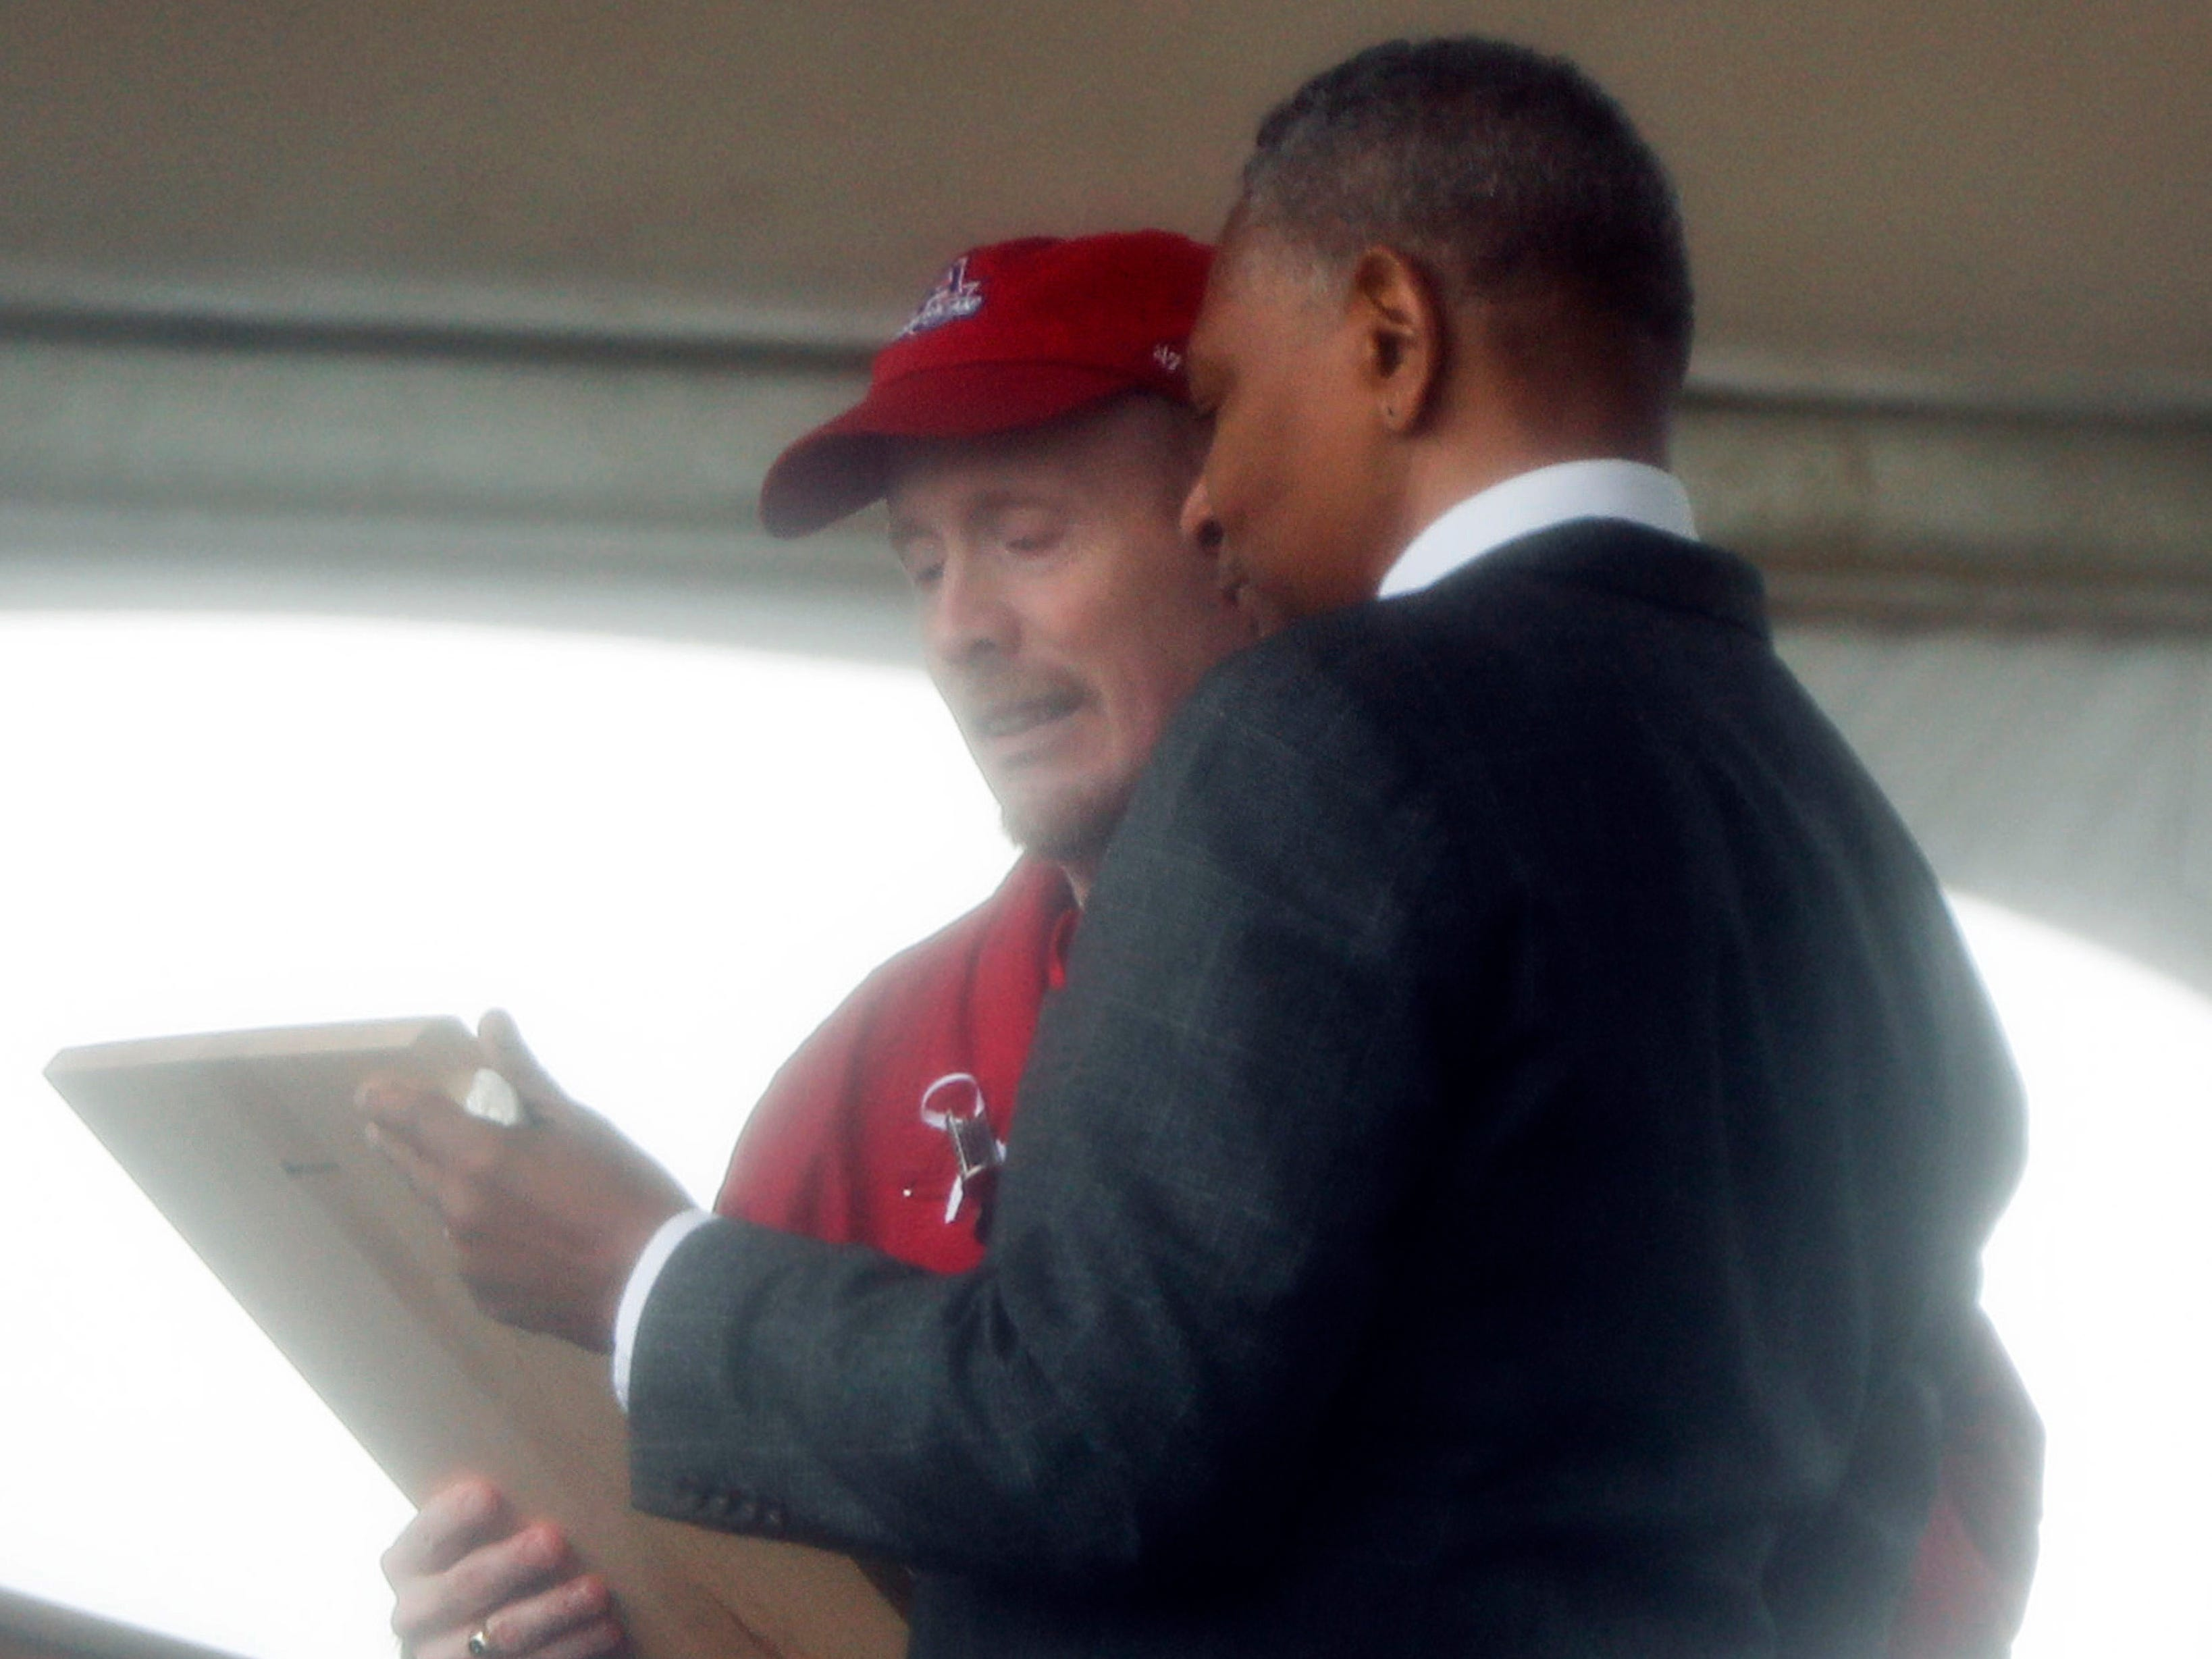 Calvin E. Wilson, right, brother of First Officer LeRoy Homer, a passenger on Flight 93, stands with Gordie Felt from the Families of Flight 93 as he presents him with a plaque at the dedication of the 93-foot tall Tower of Voices on Sunday, Sept. 9, 2018 at the Flight 93 National Memorial in Shanksville, Pa.